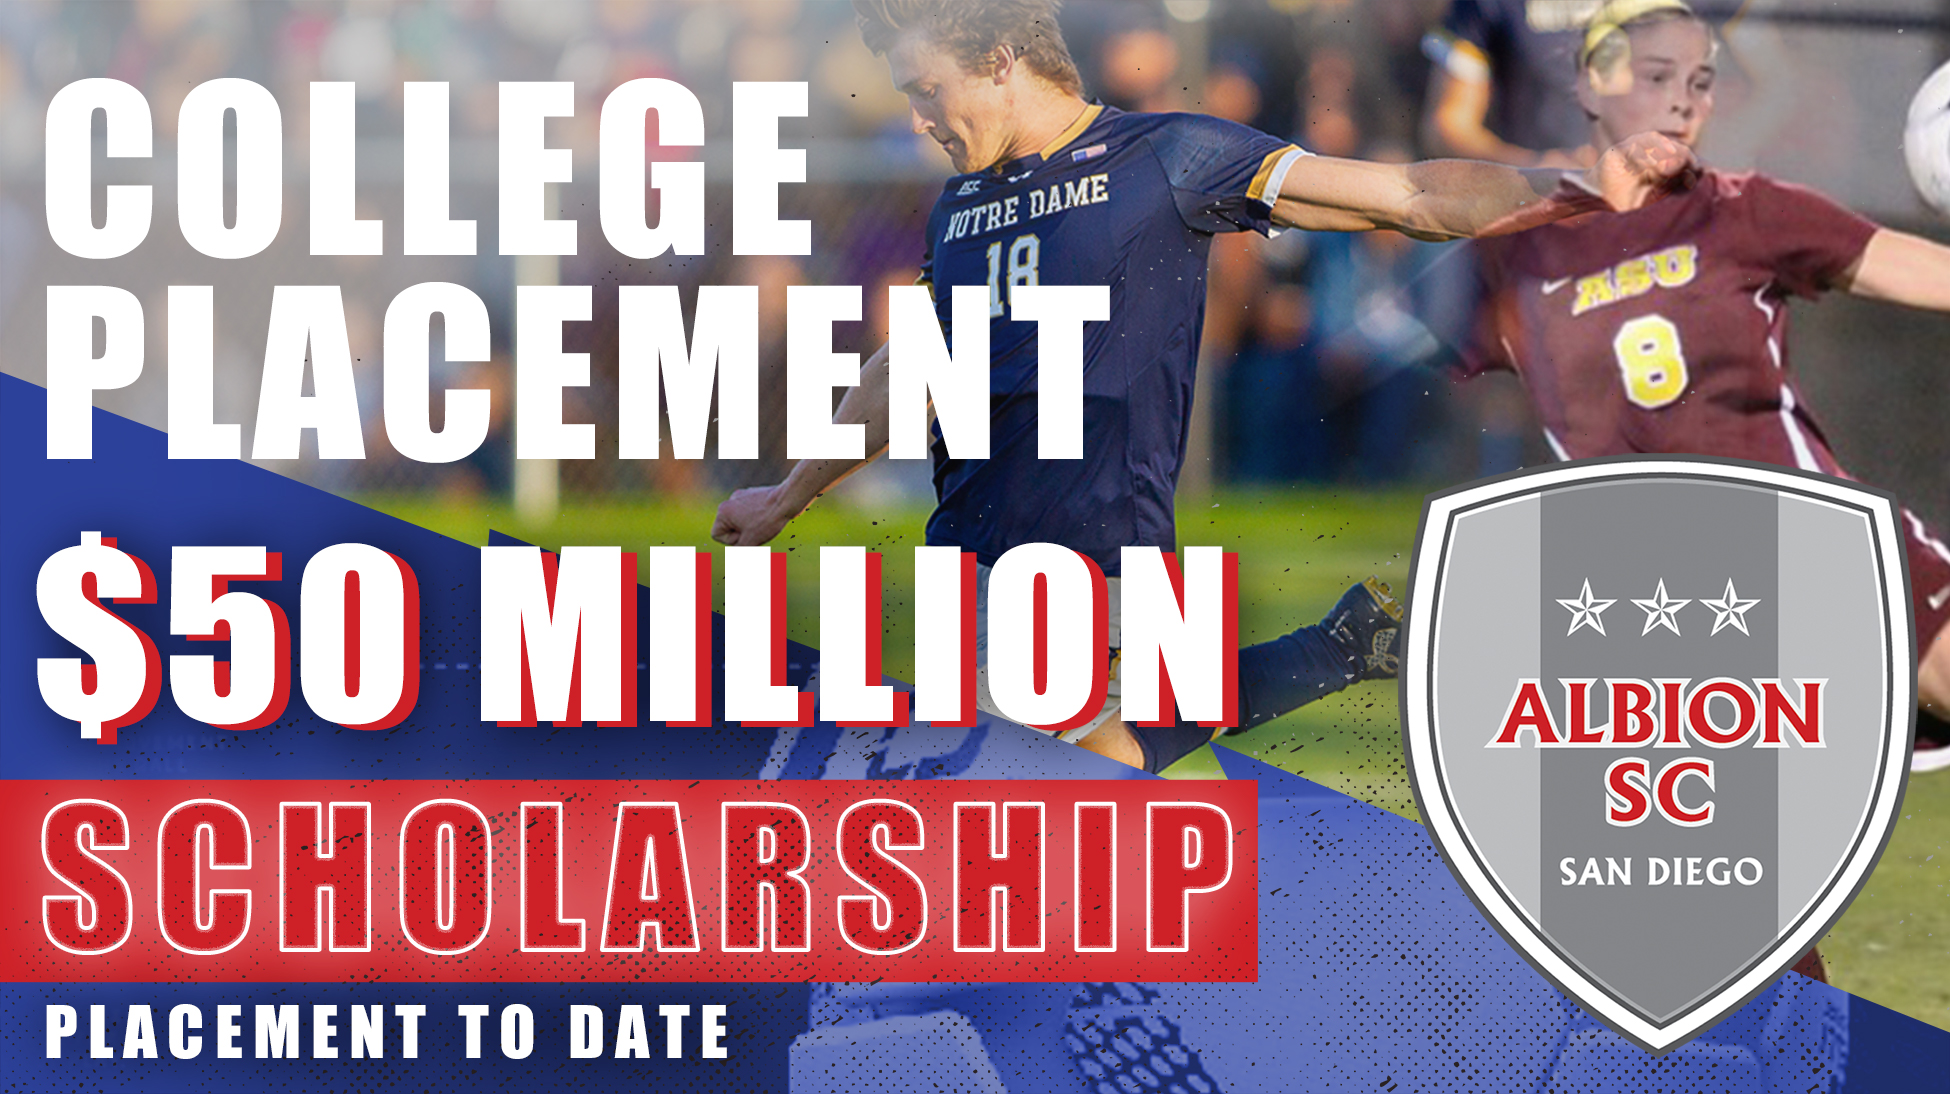 ALBION SC College Commitments Reach Record High